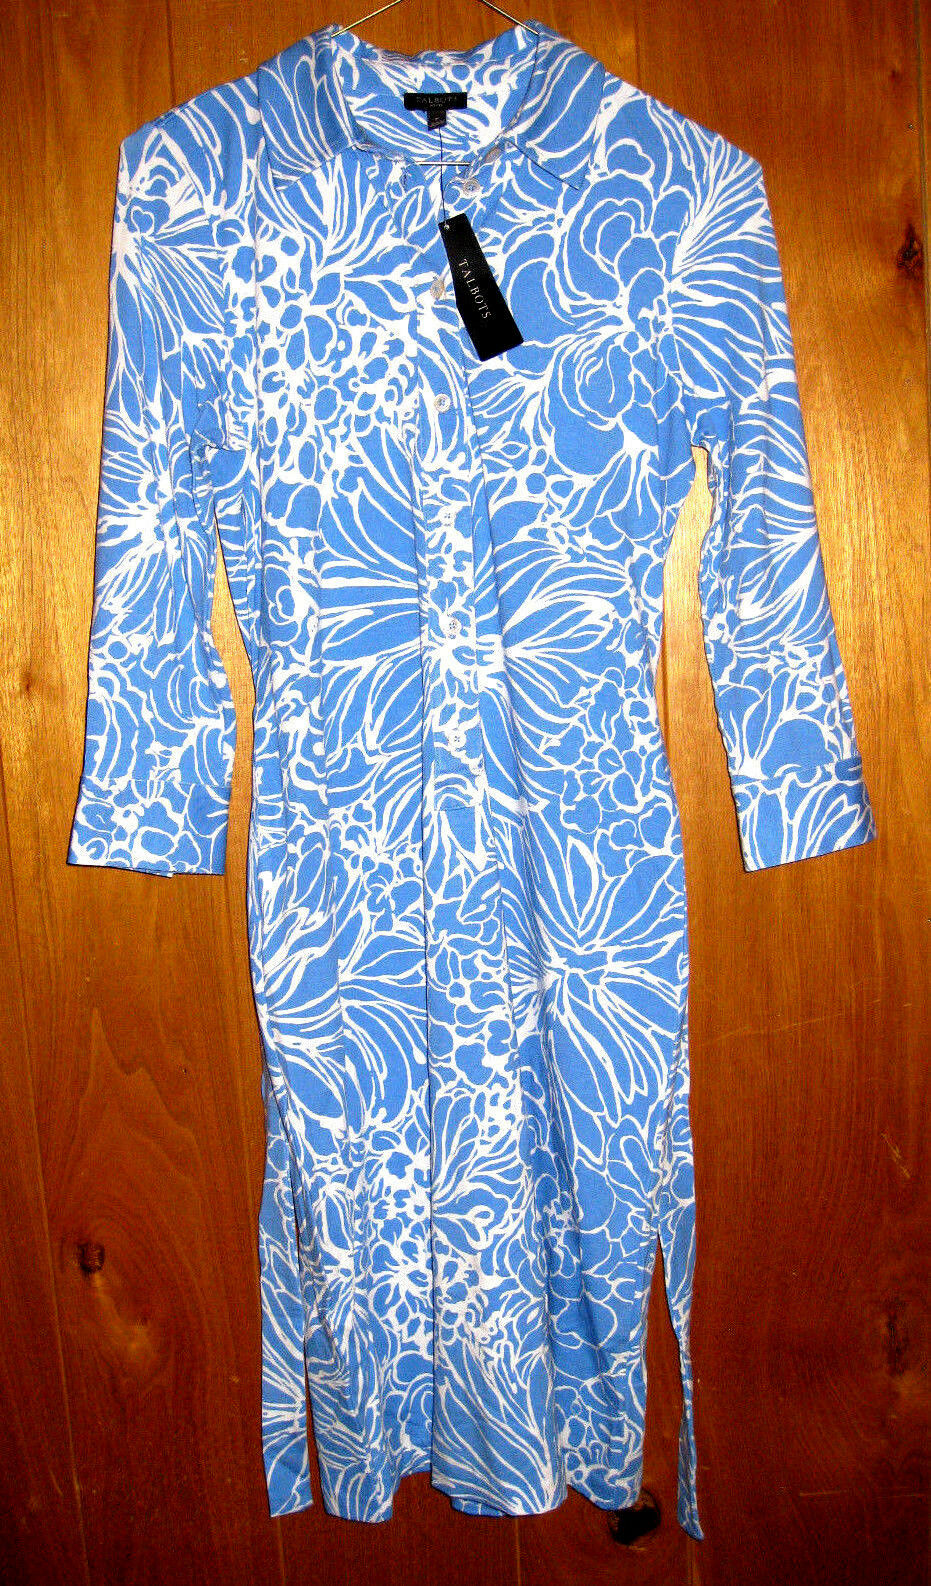 Talbots Petites Dress Light Sky bluee White Floral Womens Size P Stretch  NWT